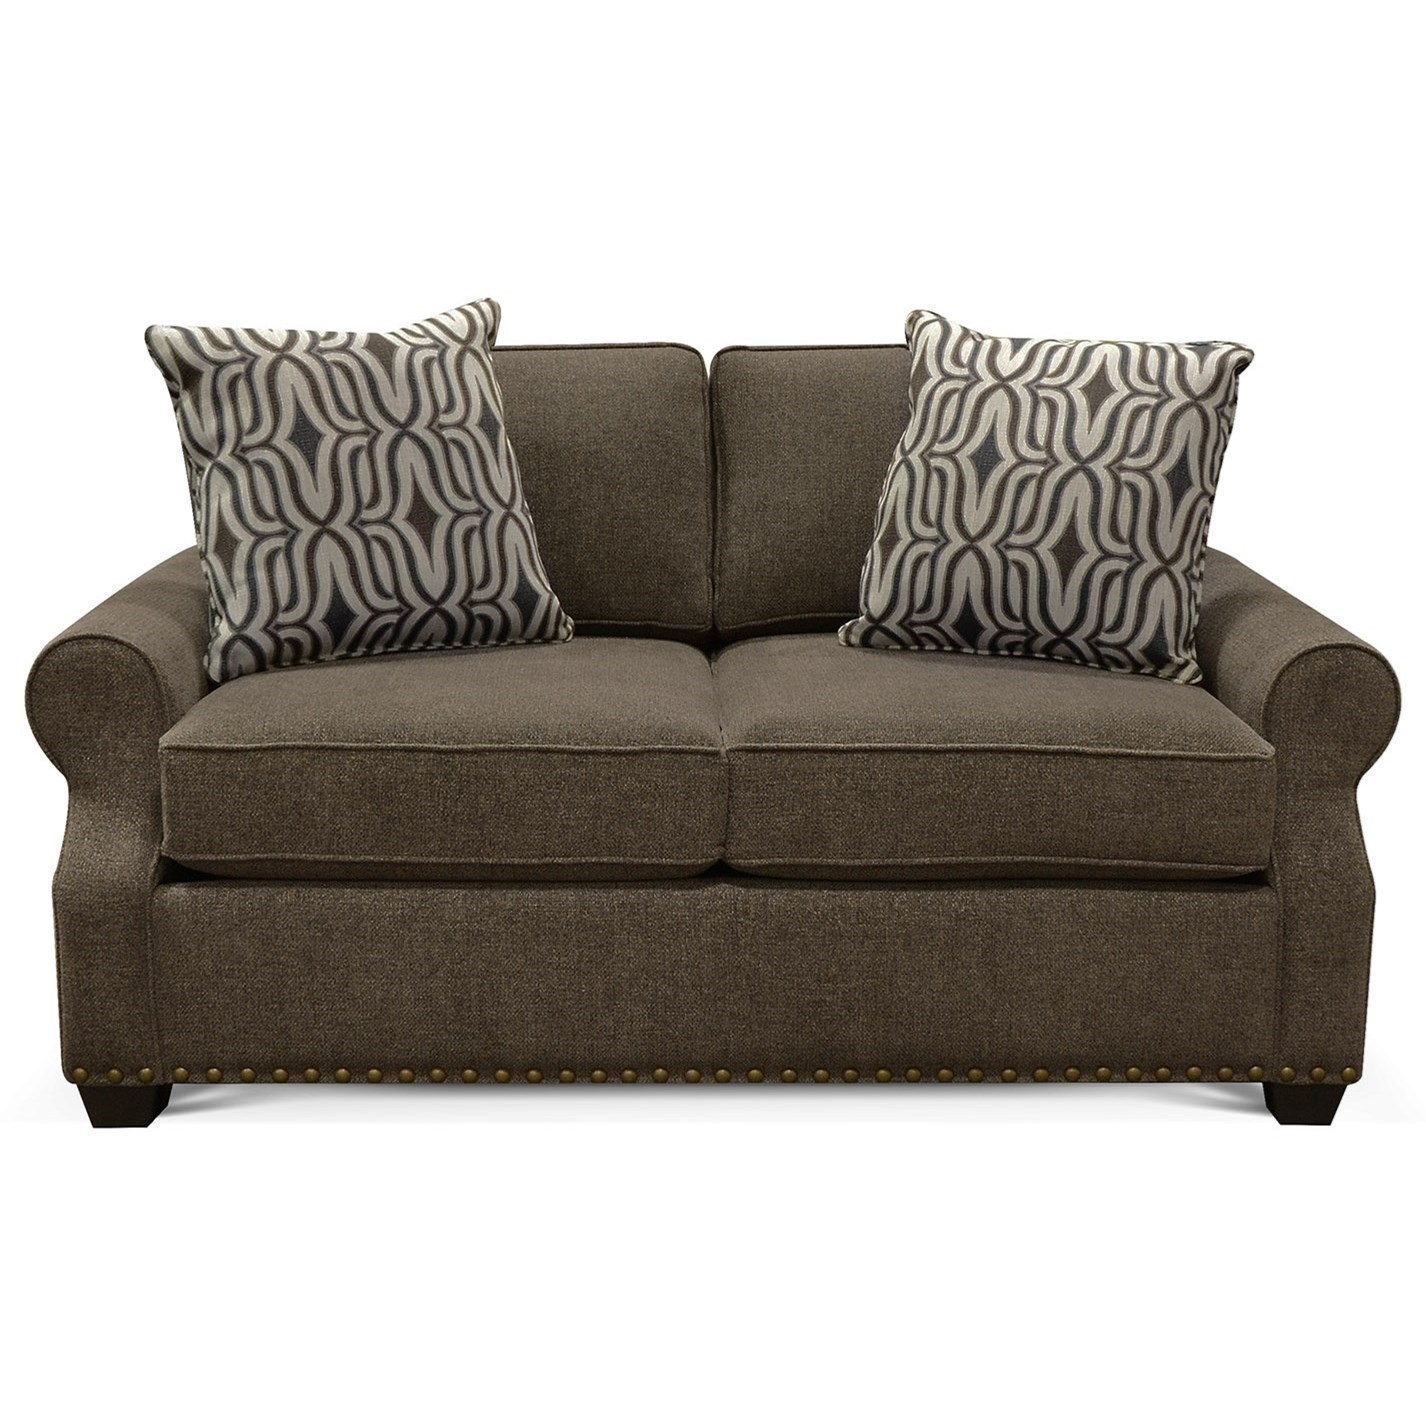 England Adele 5l06n 7731 Loveseat With Nailheads Furniture And Appliancemart Love Seats